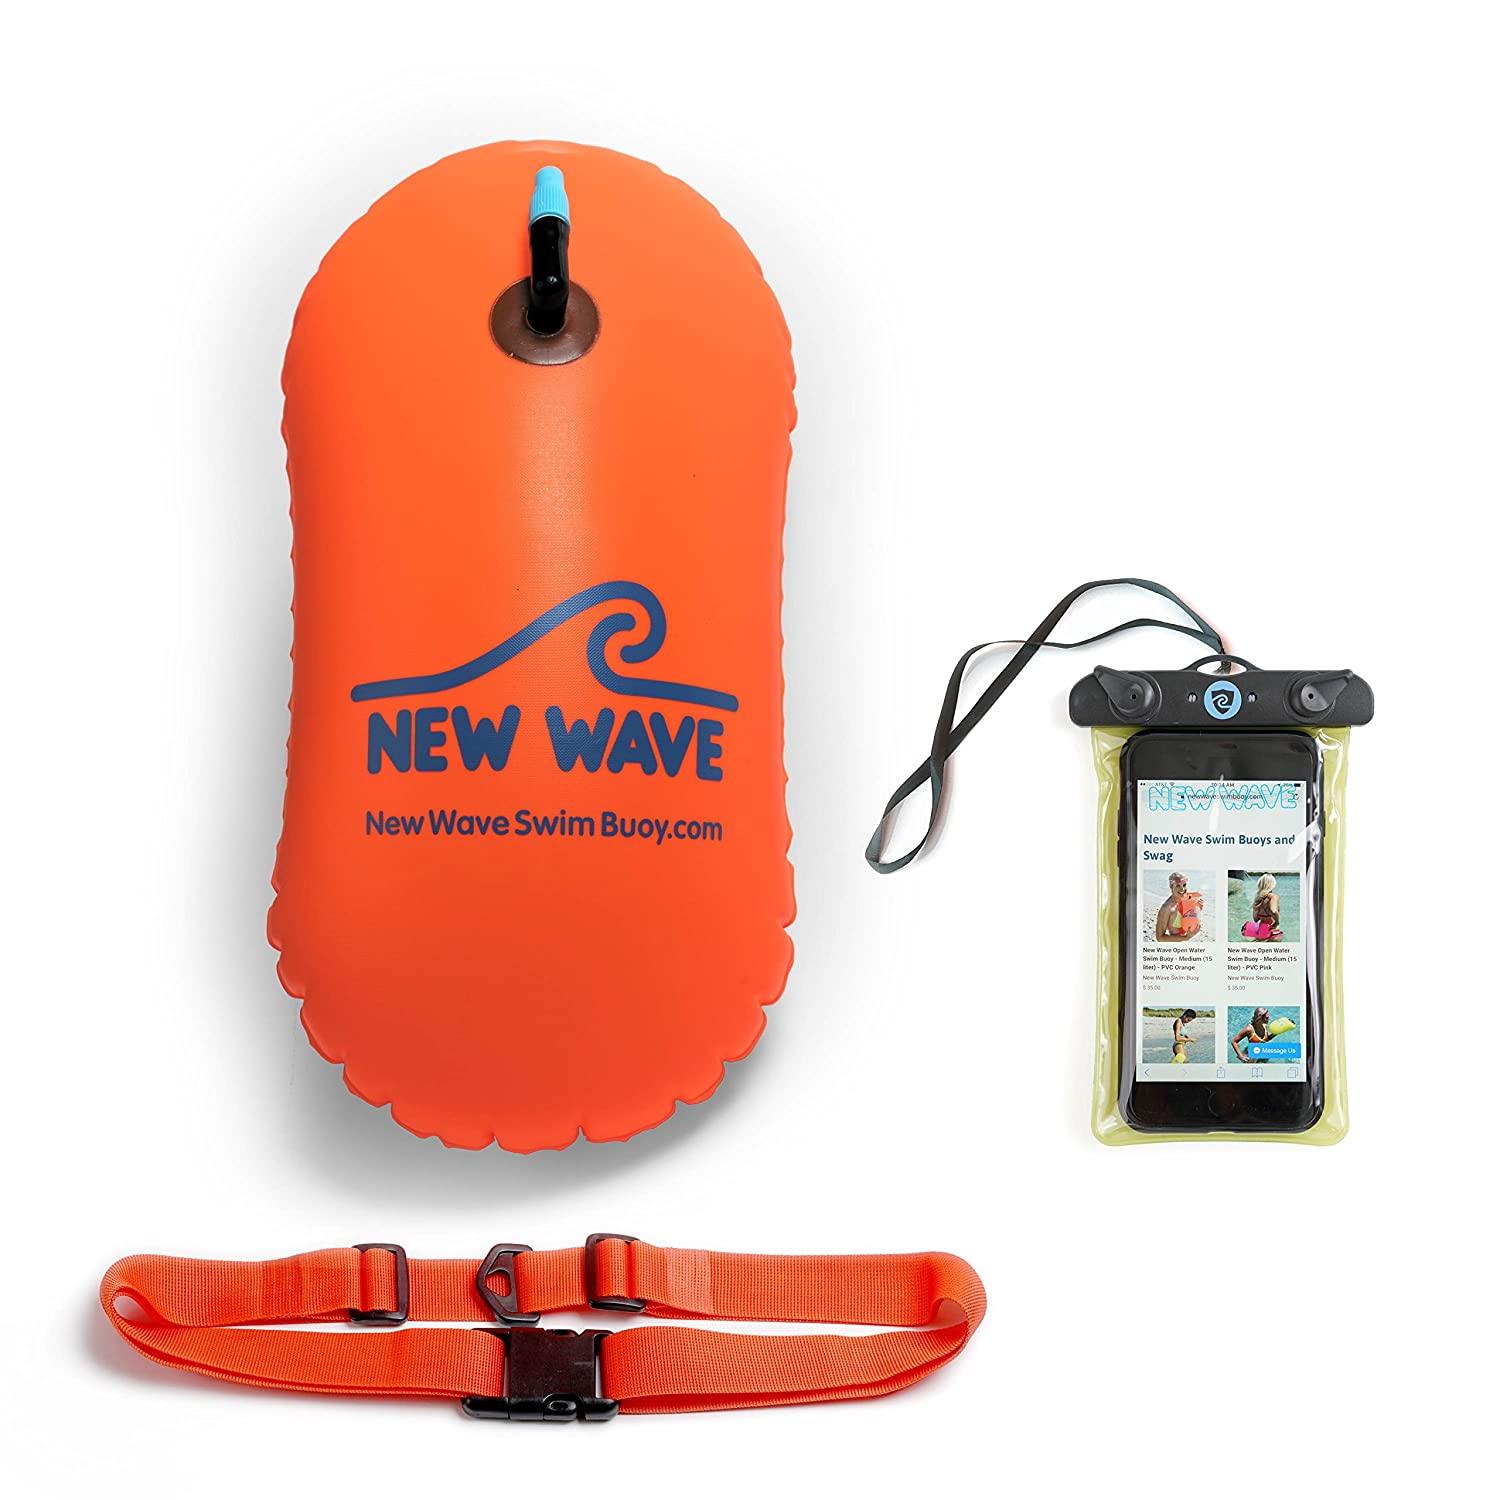 New Wave Swim Bubble for Open Water Swimmers and Triathletes - Be Bright, Be Seen & Be Safer with New Wave While Swimming Outdoors with This Safety Swim Buoy Tow Float New Wave Swim Buoy NWSB-Bubble-Green